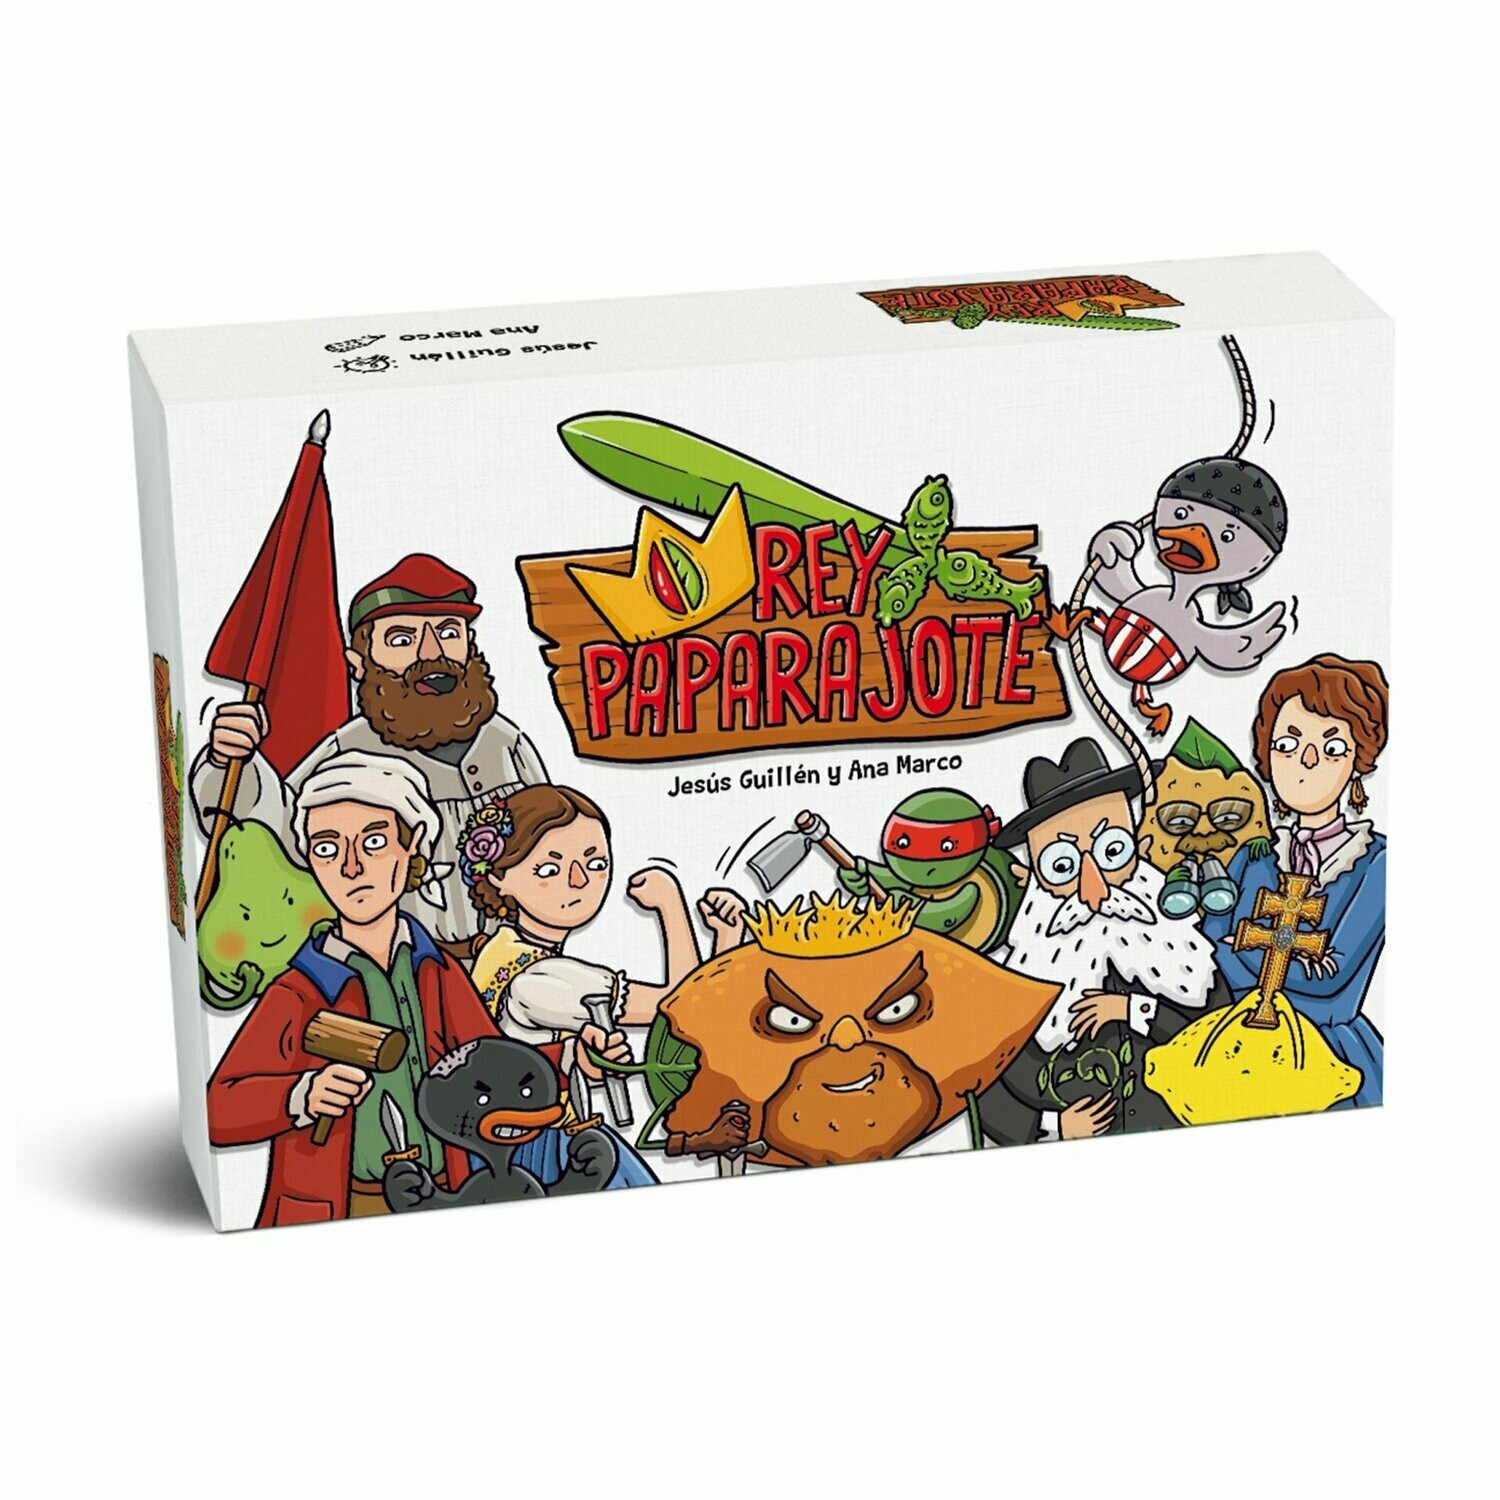 Ana Marco buy paparajote king card game from rocket lemon games